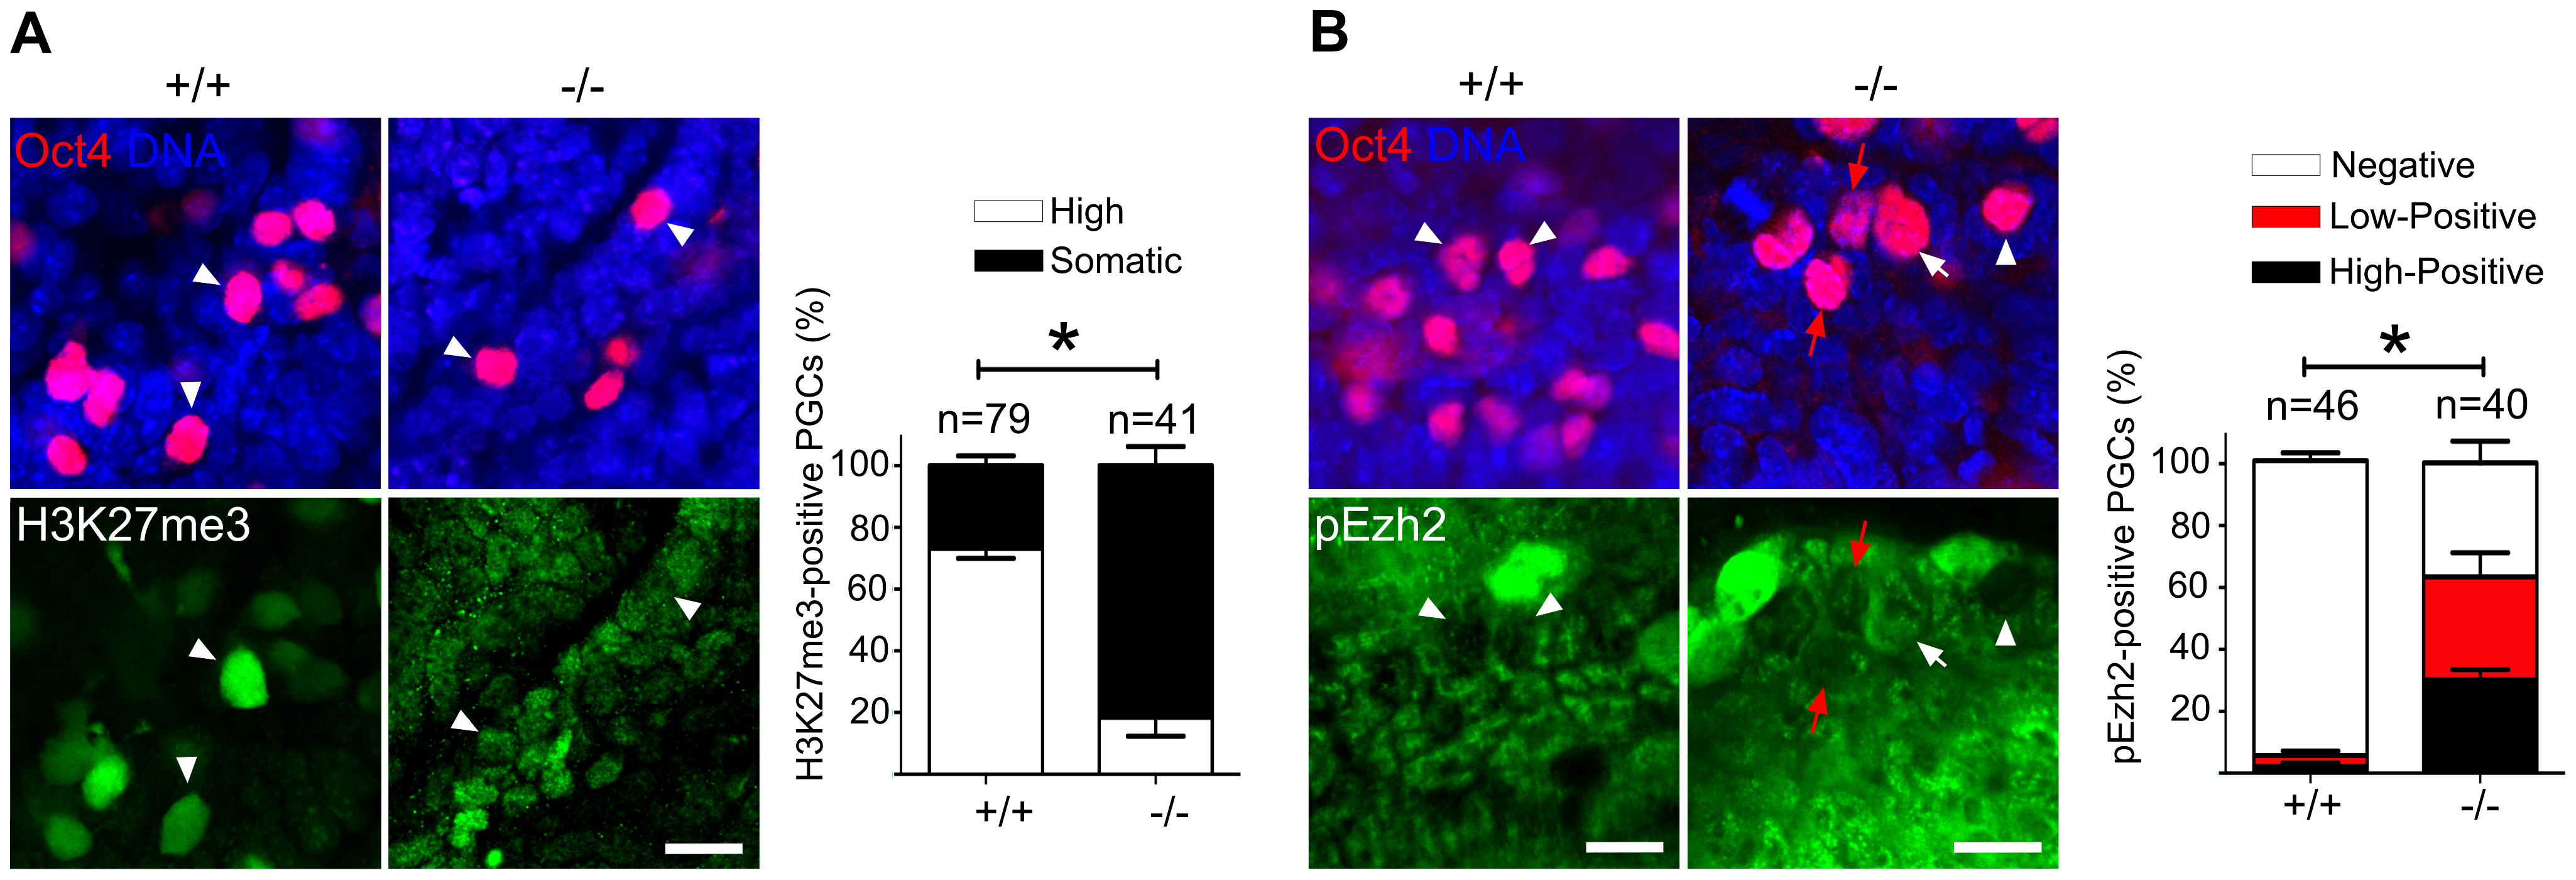 Majority of Mad2l2 deficient PGCs fail to upregulate H3K27me3.